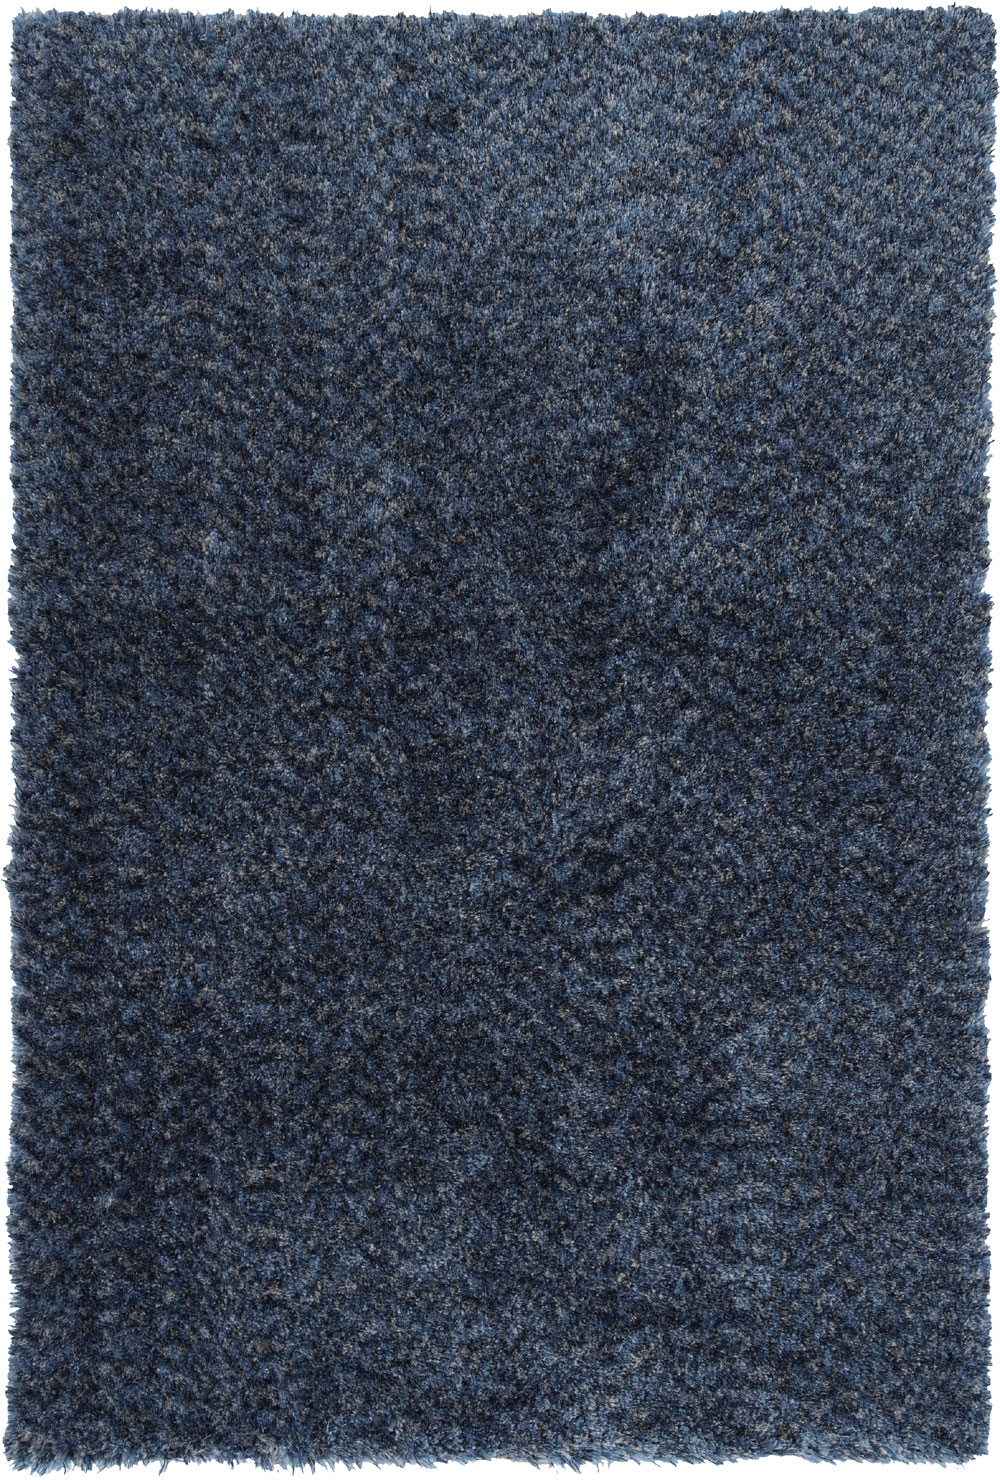 Dalyn Cabot CT1 Navy Rug